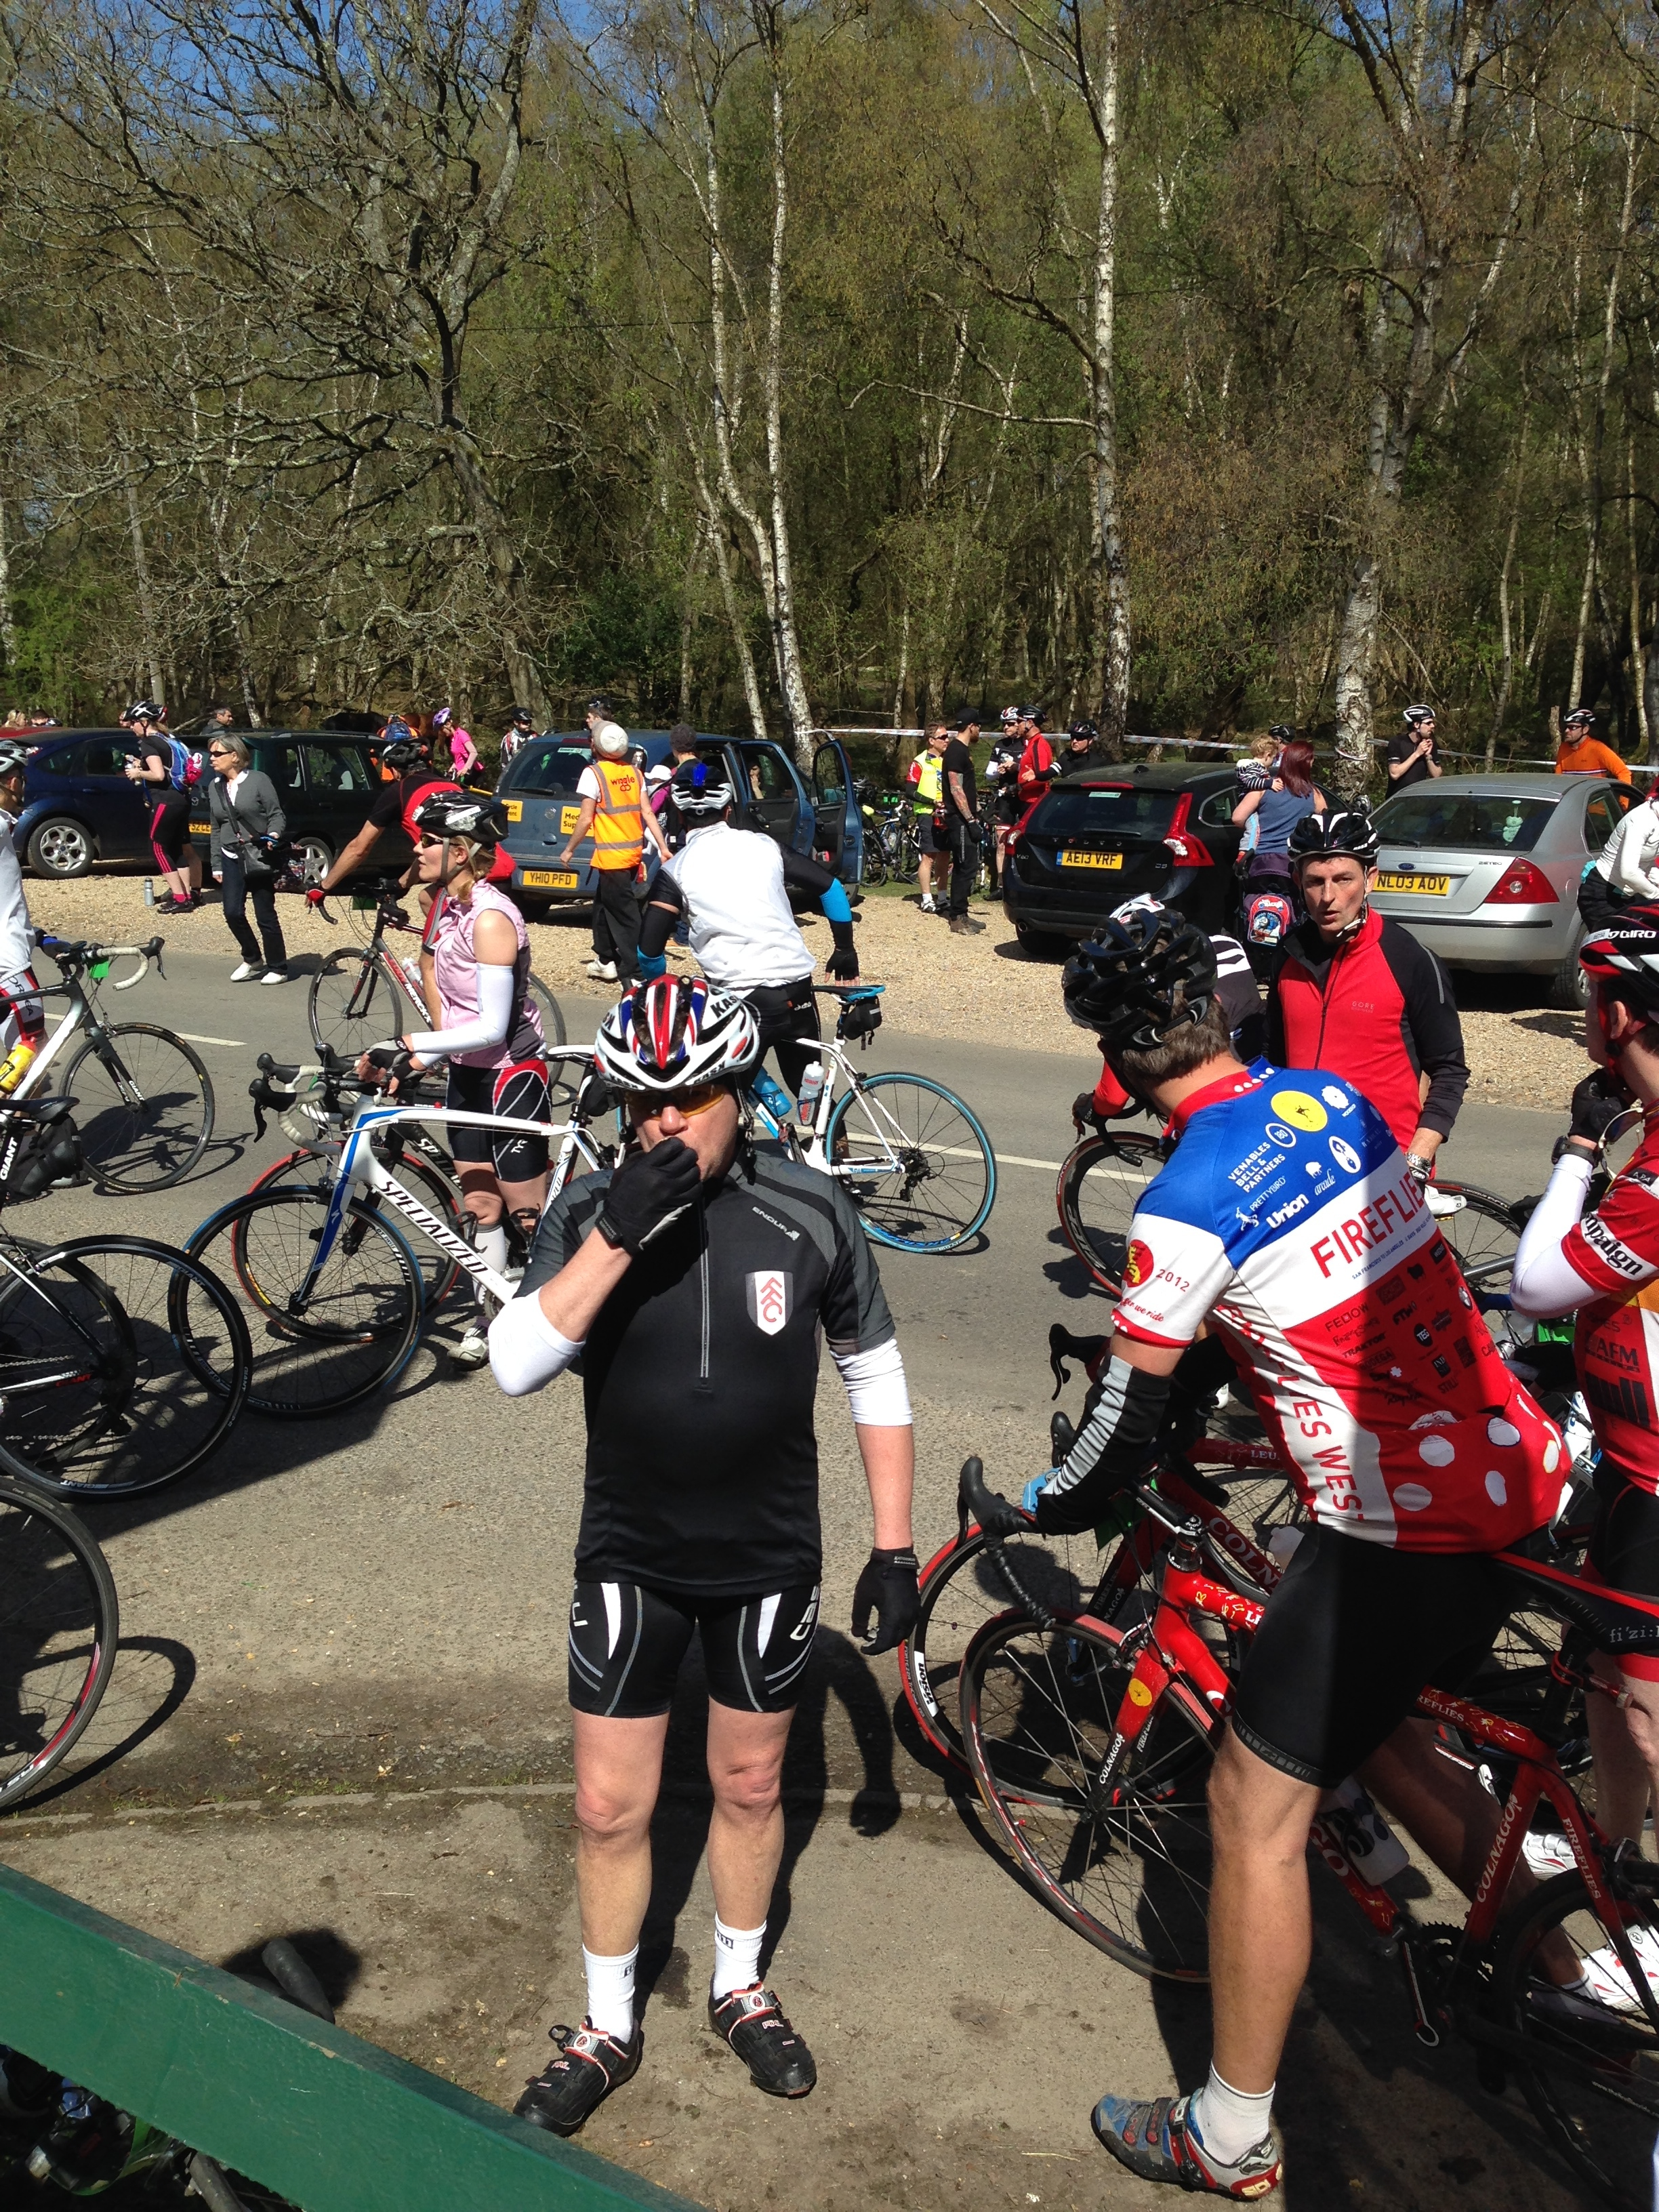 Cyclists arriving at the rest stop